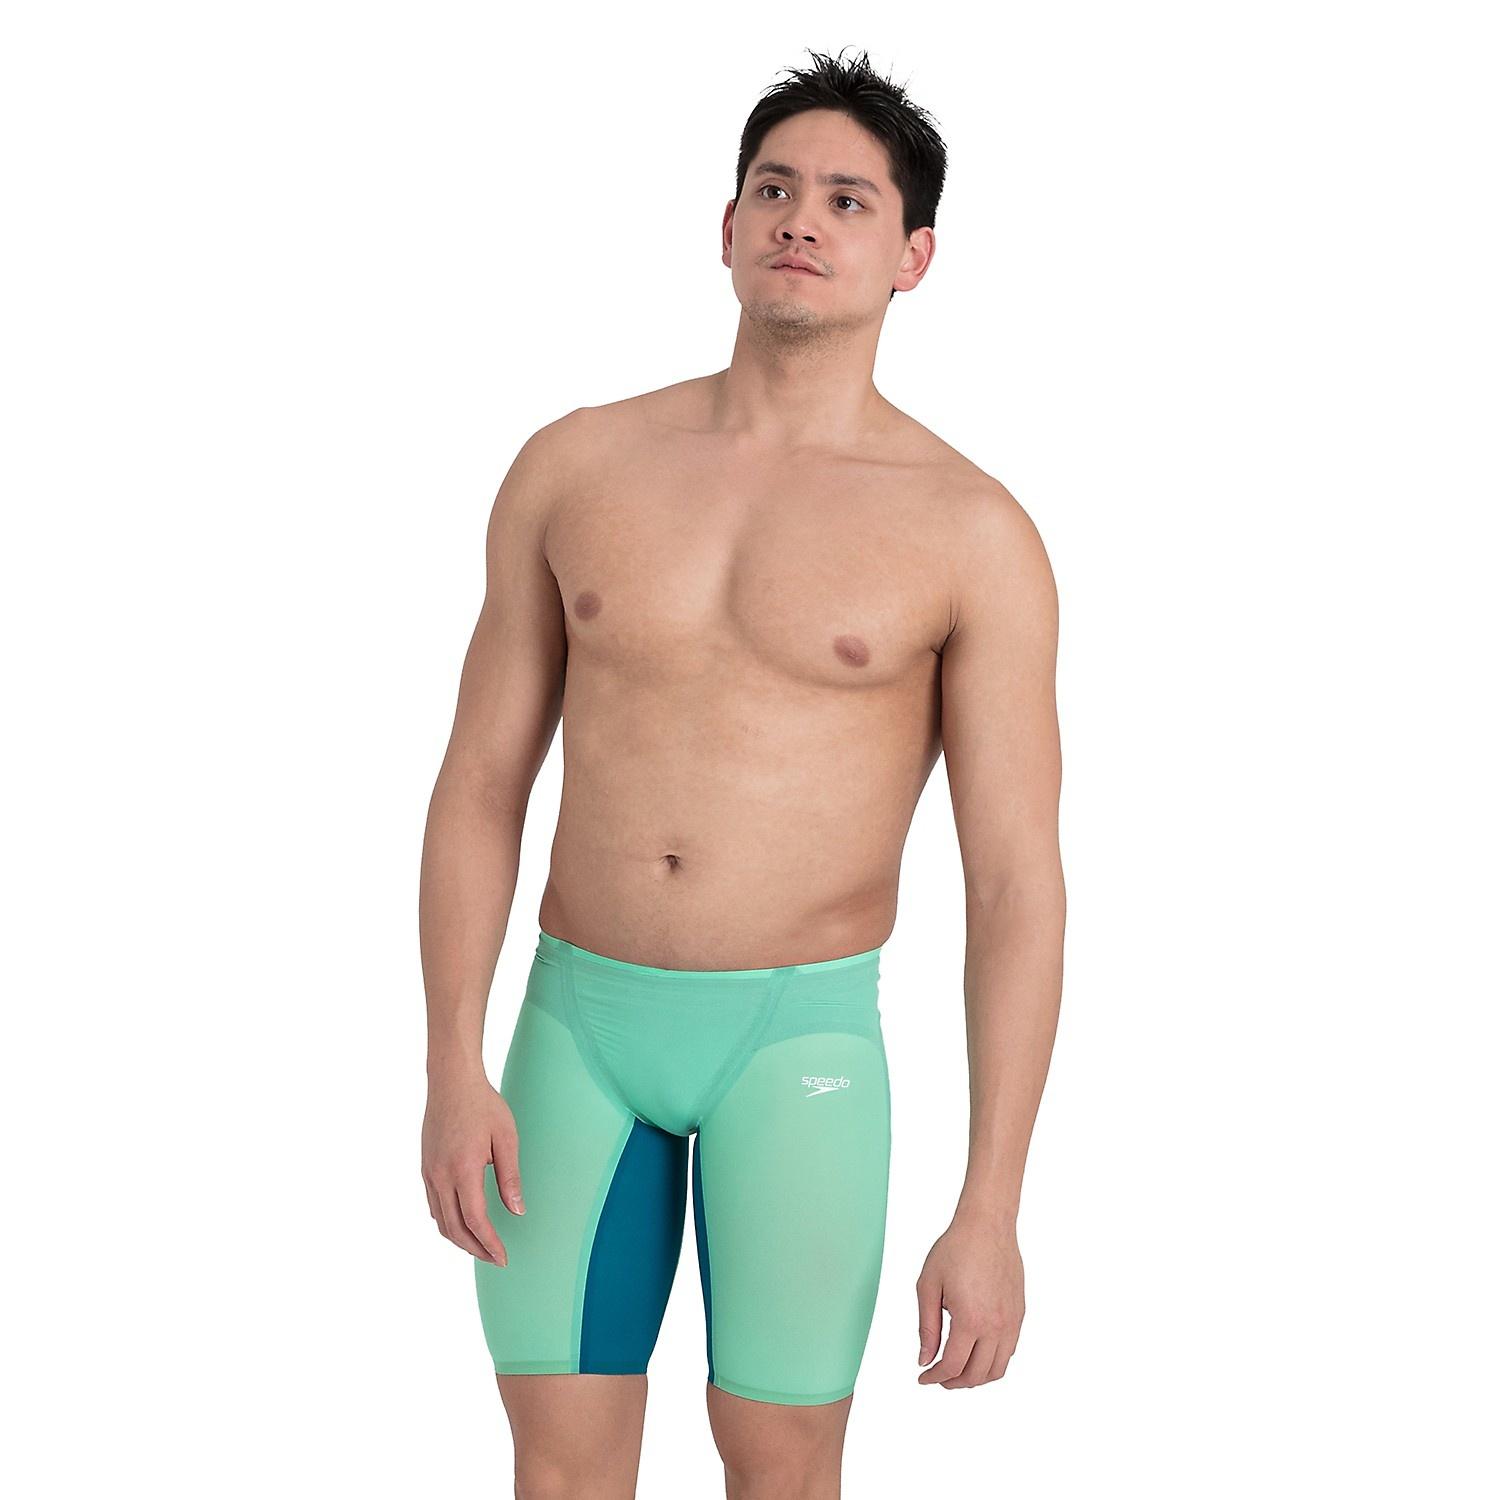 Speedo LZR Pure Valor Jammer